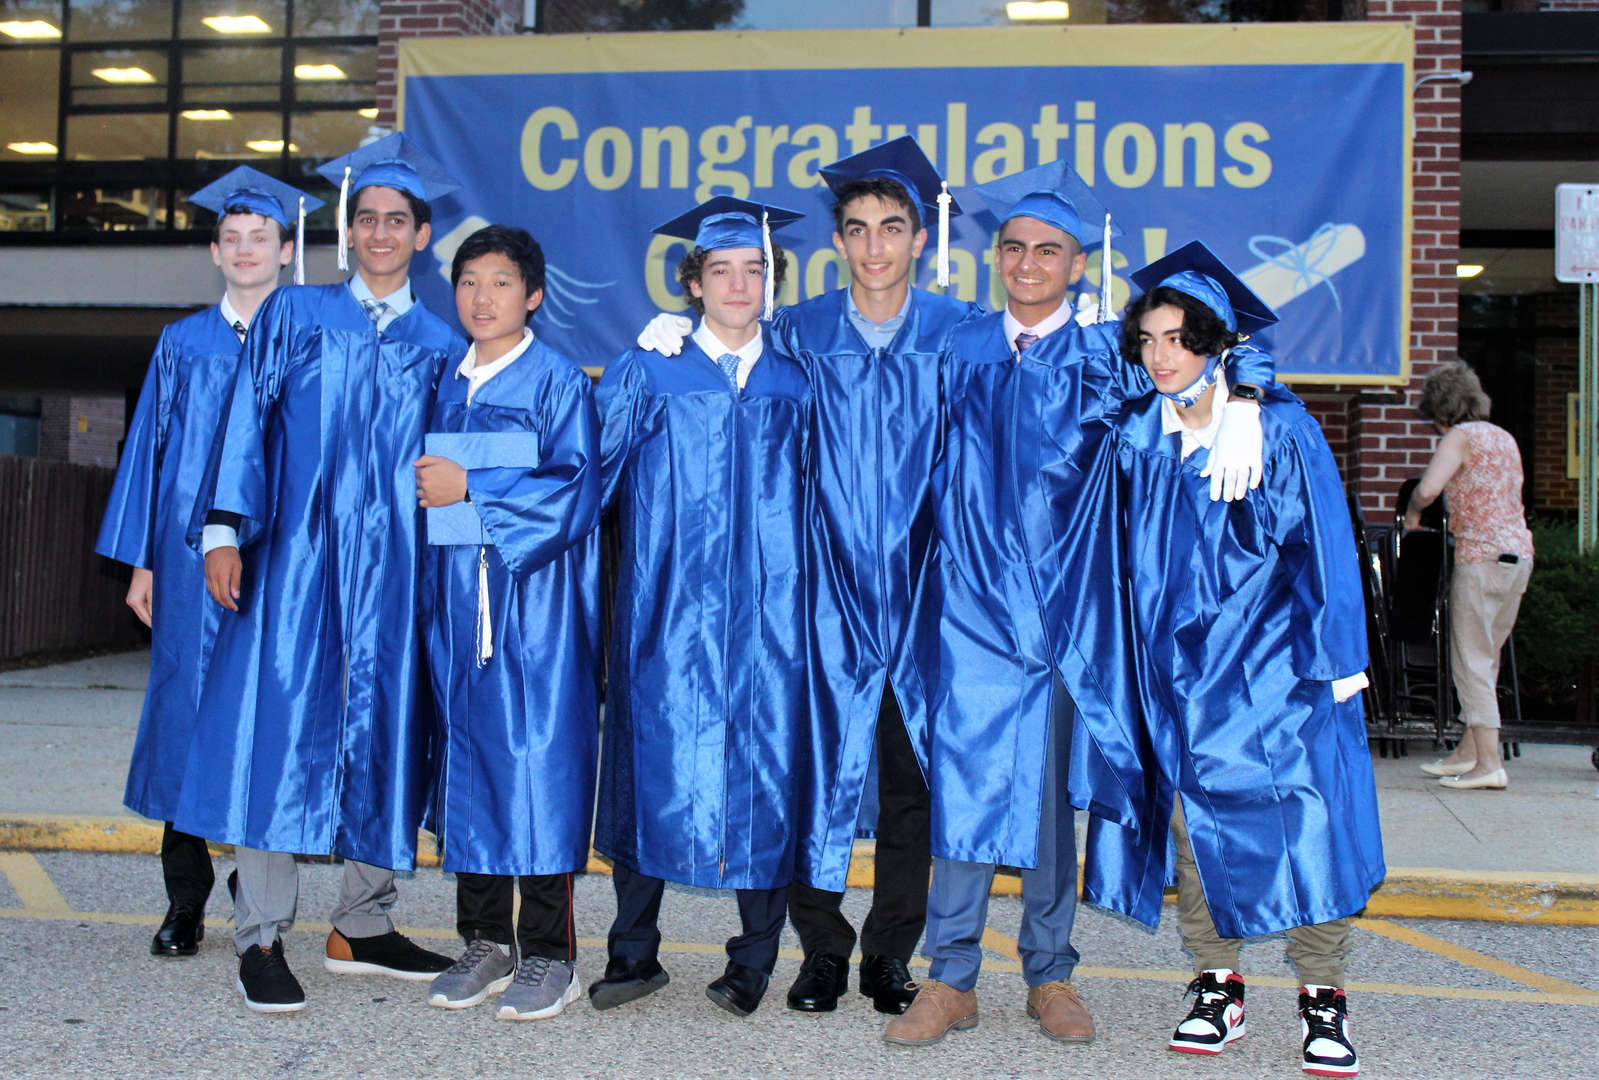 Seven boys who graduated lined up in front of a congratulations banner.